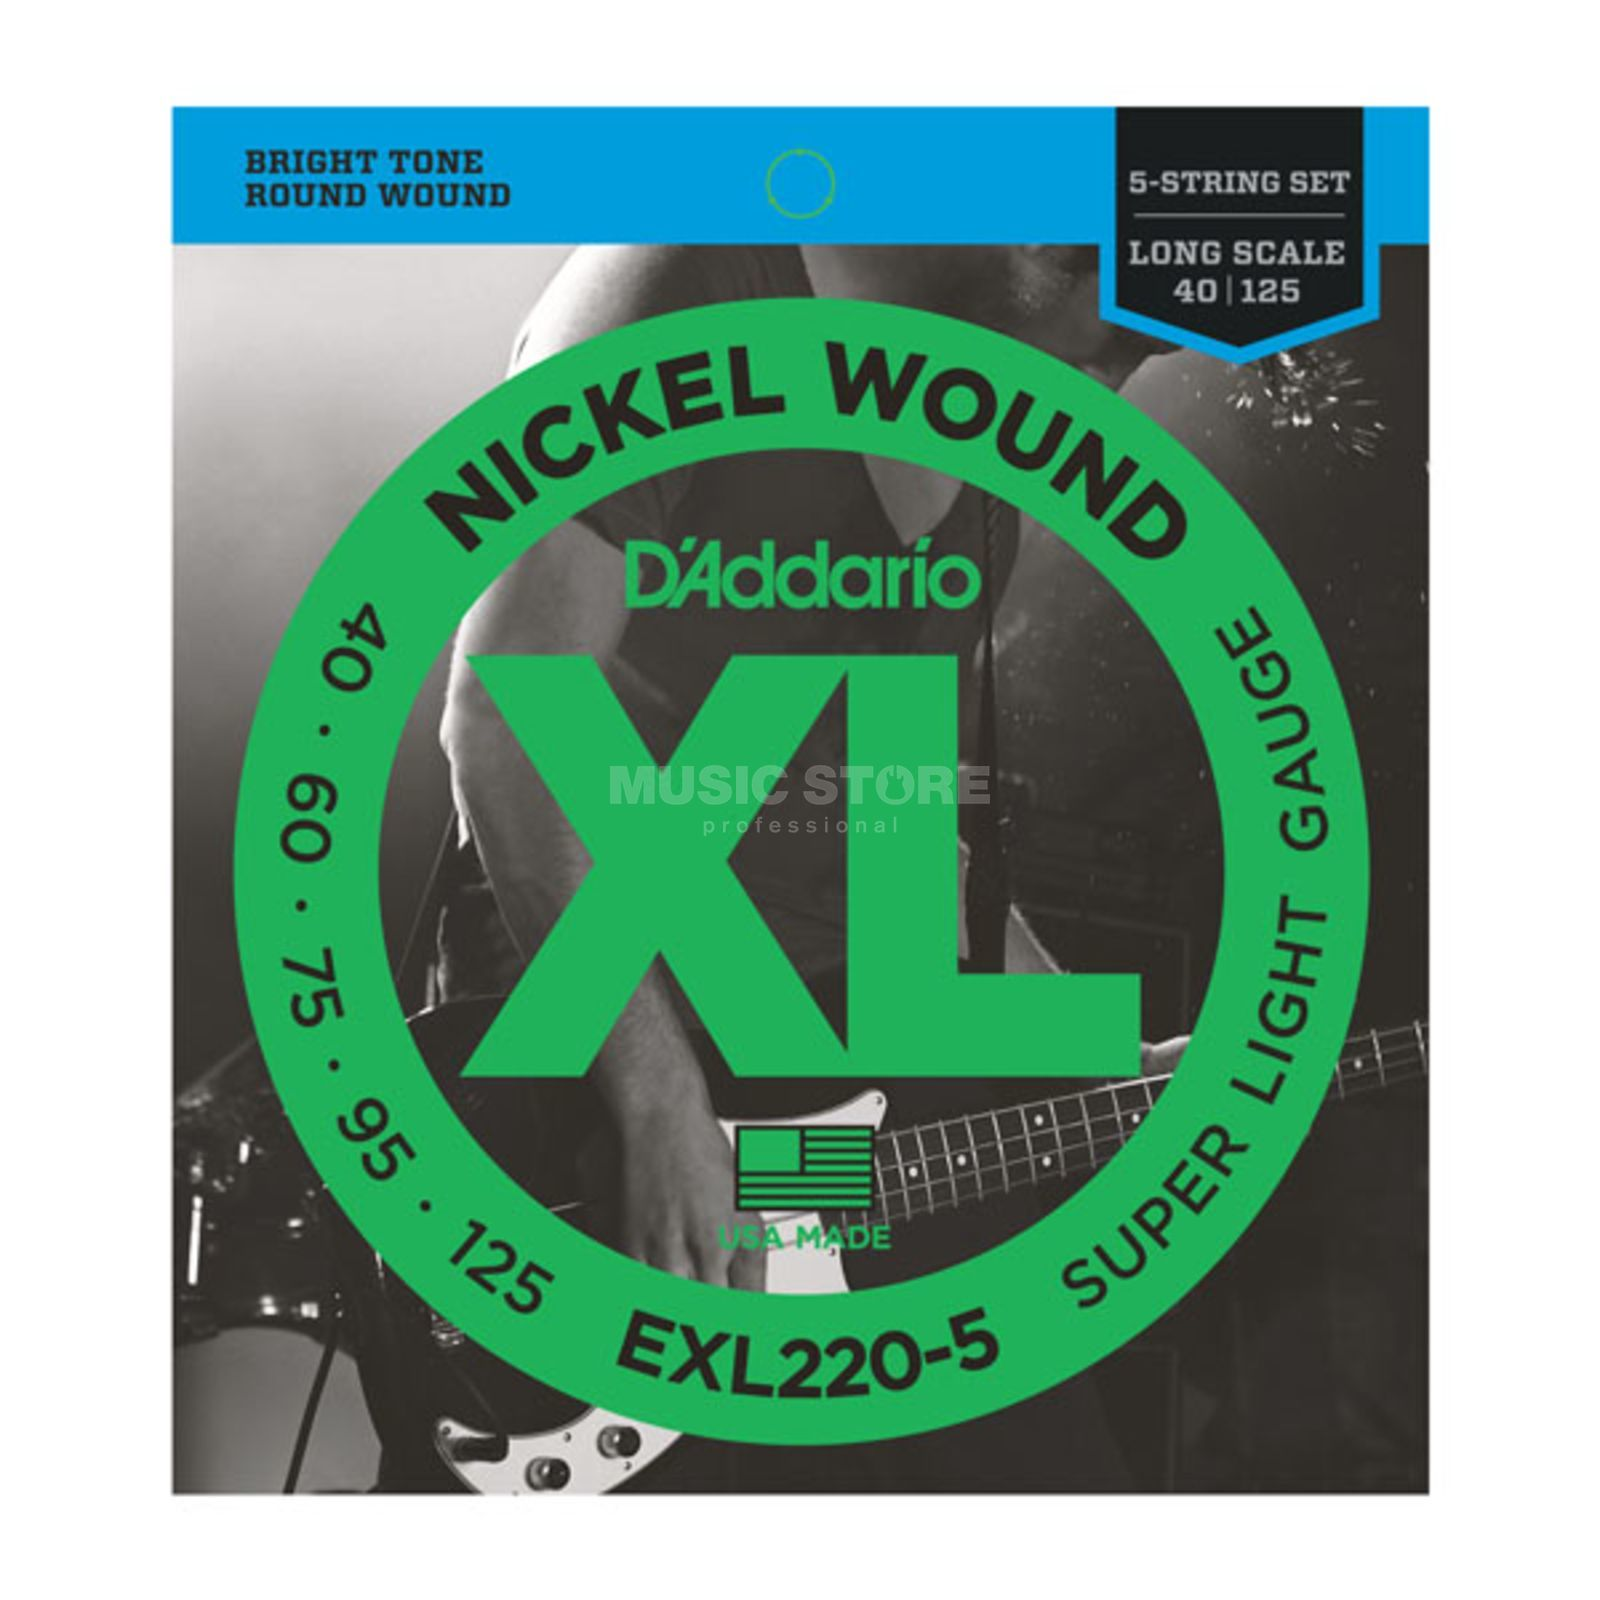 D'Addario Bass Strings XL Nickel 40-125 40-60-75-95-125, EXL220-5 Zdjęcie produktu